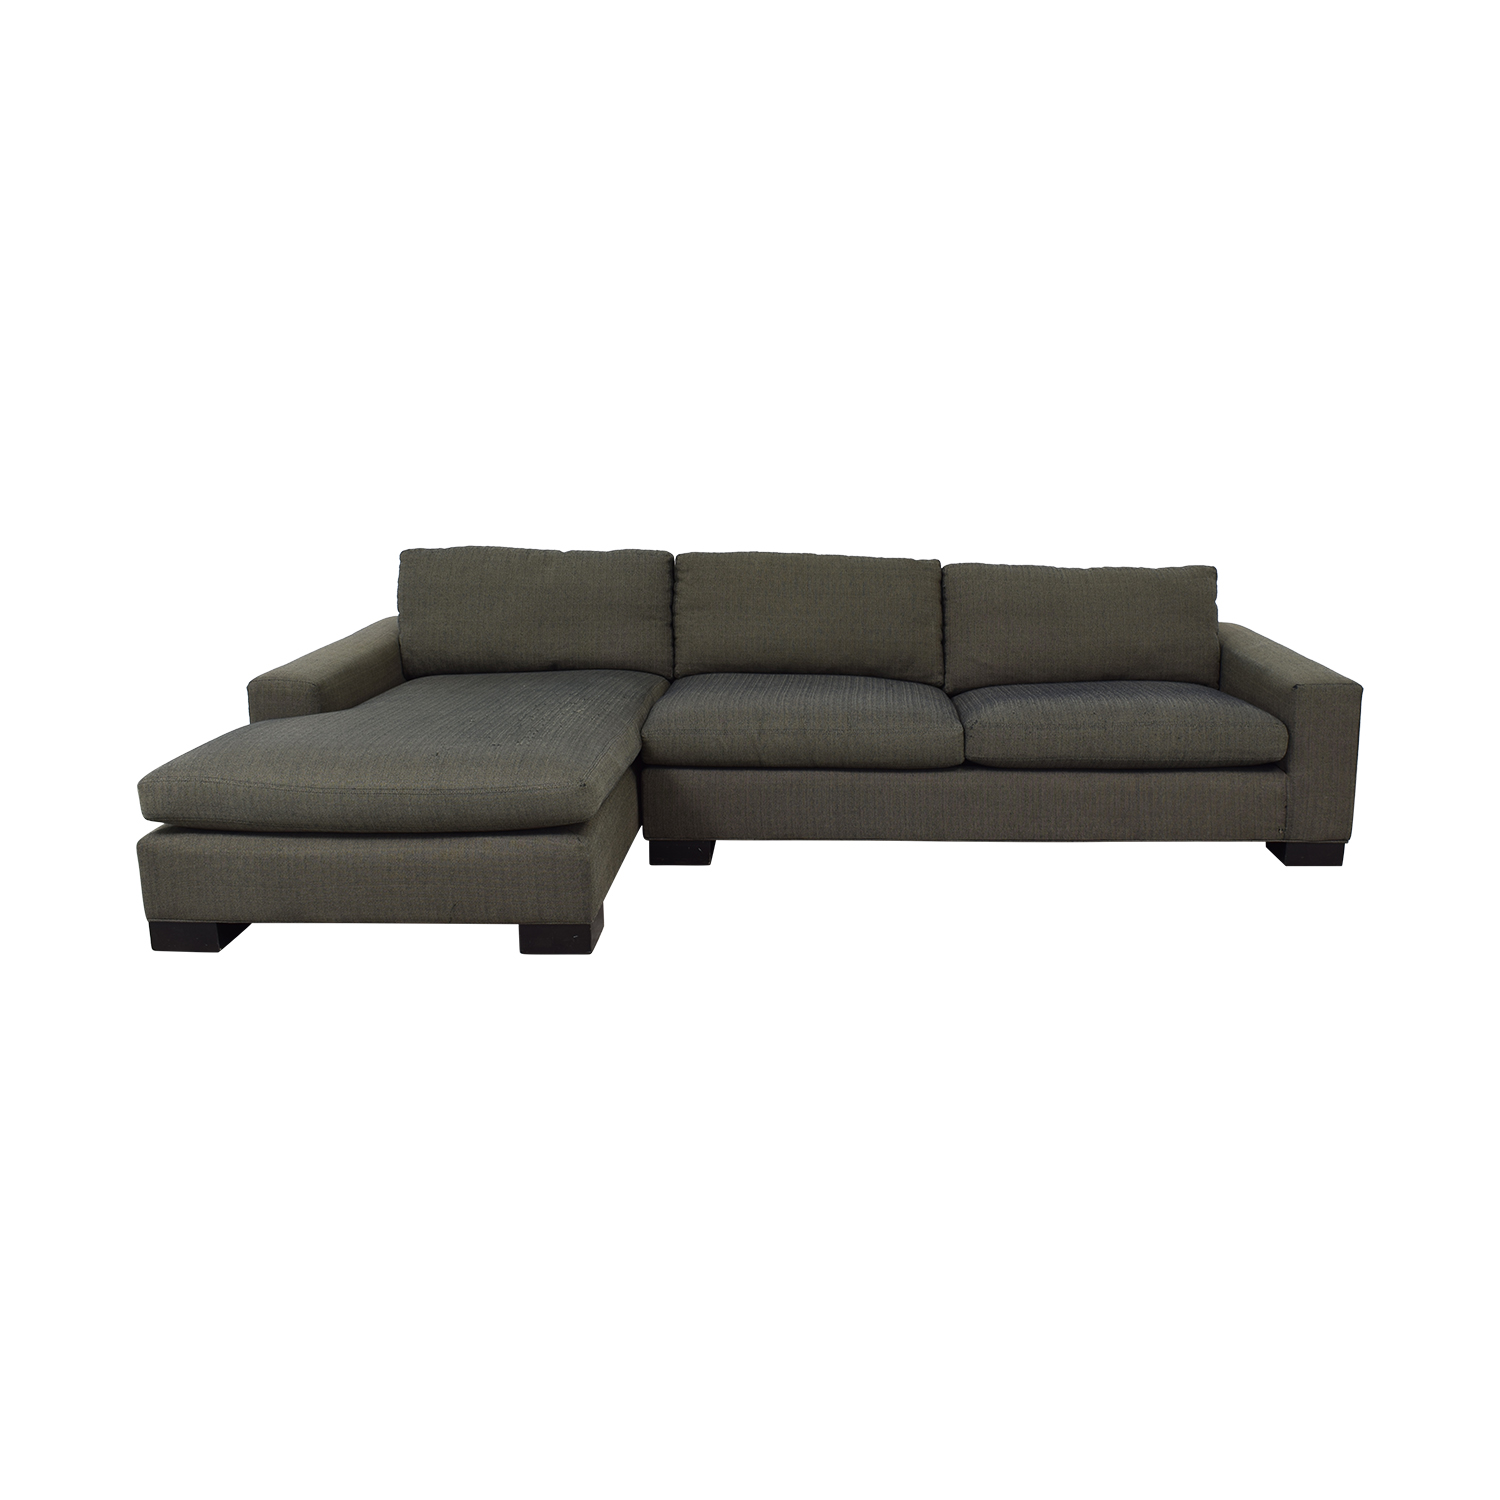 Room & Board Room & Board Brown Chaise Sectional nj